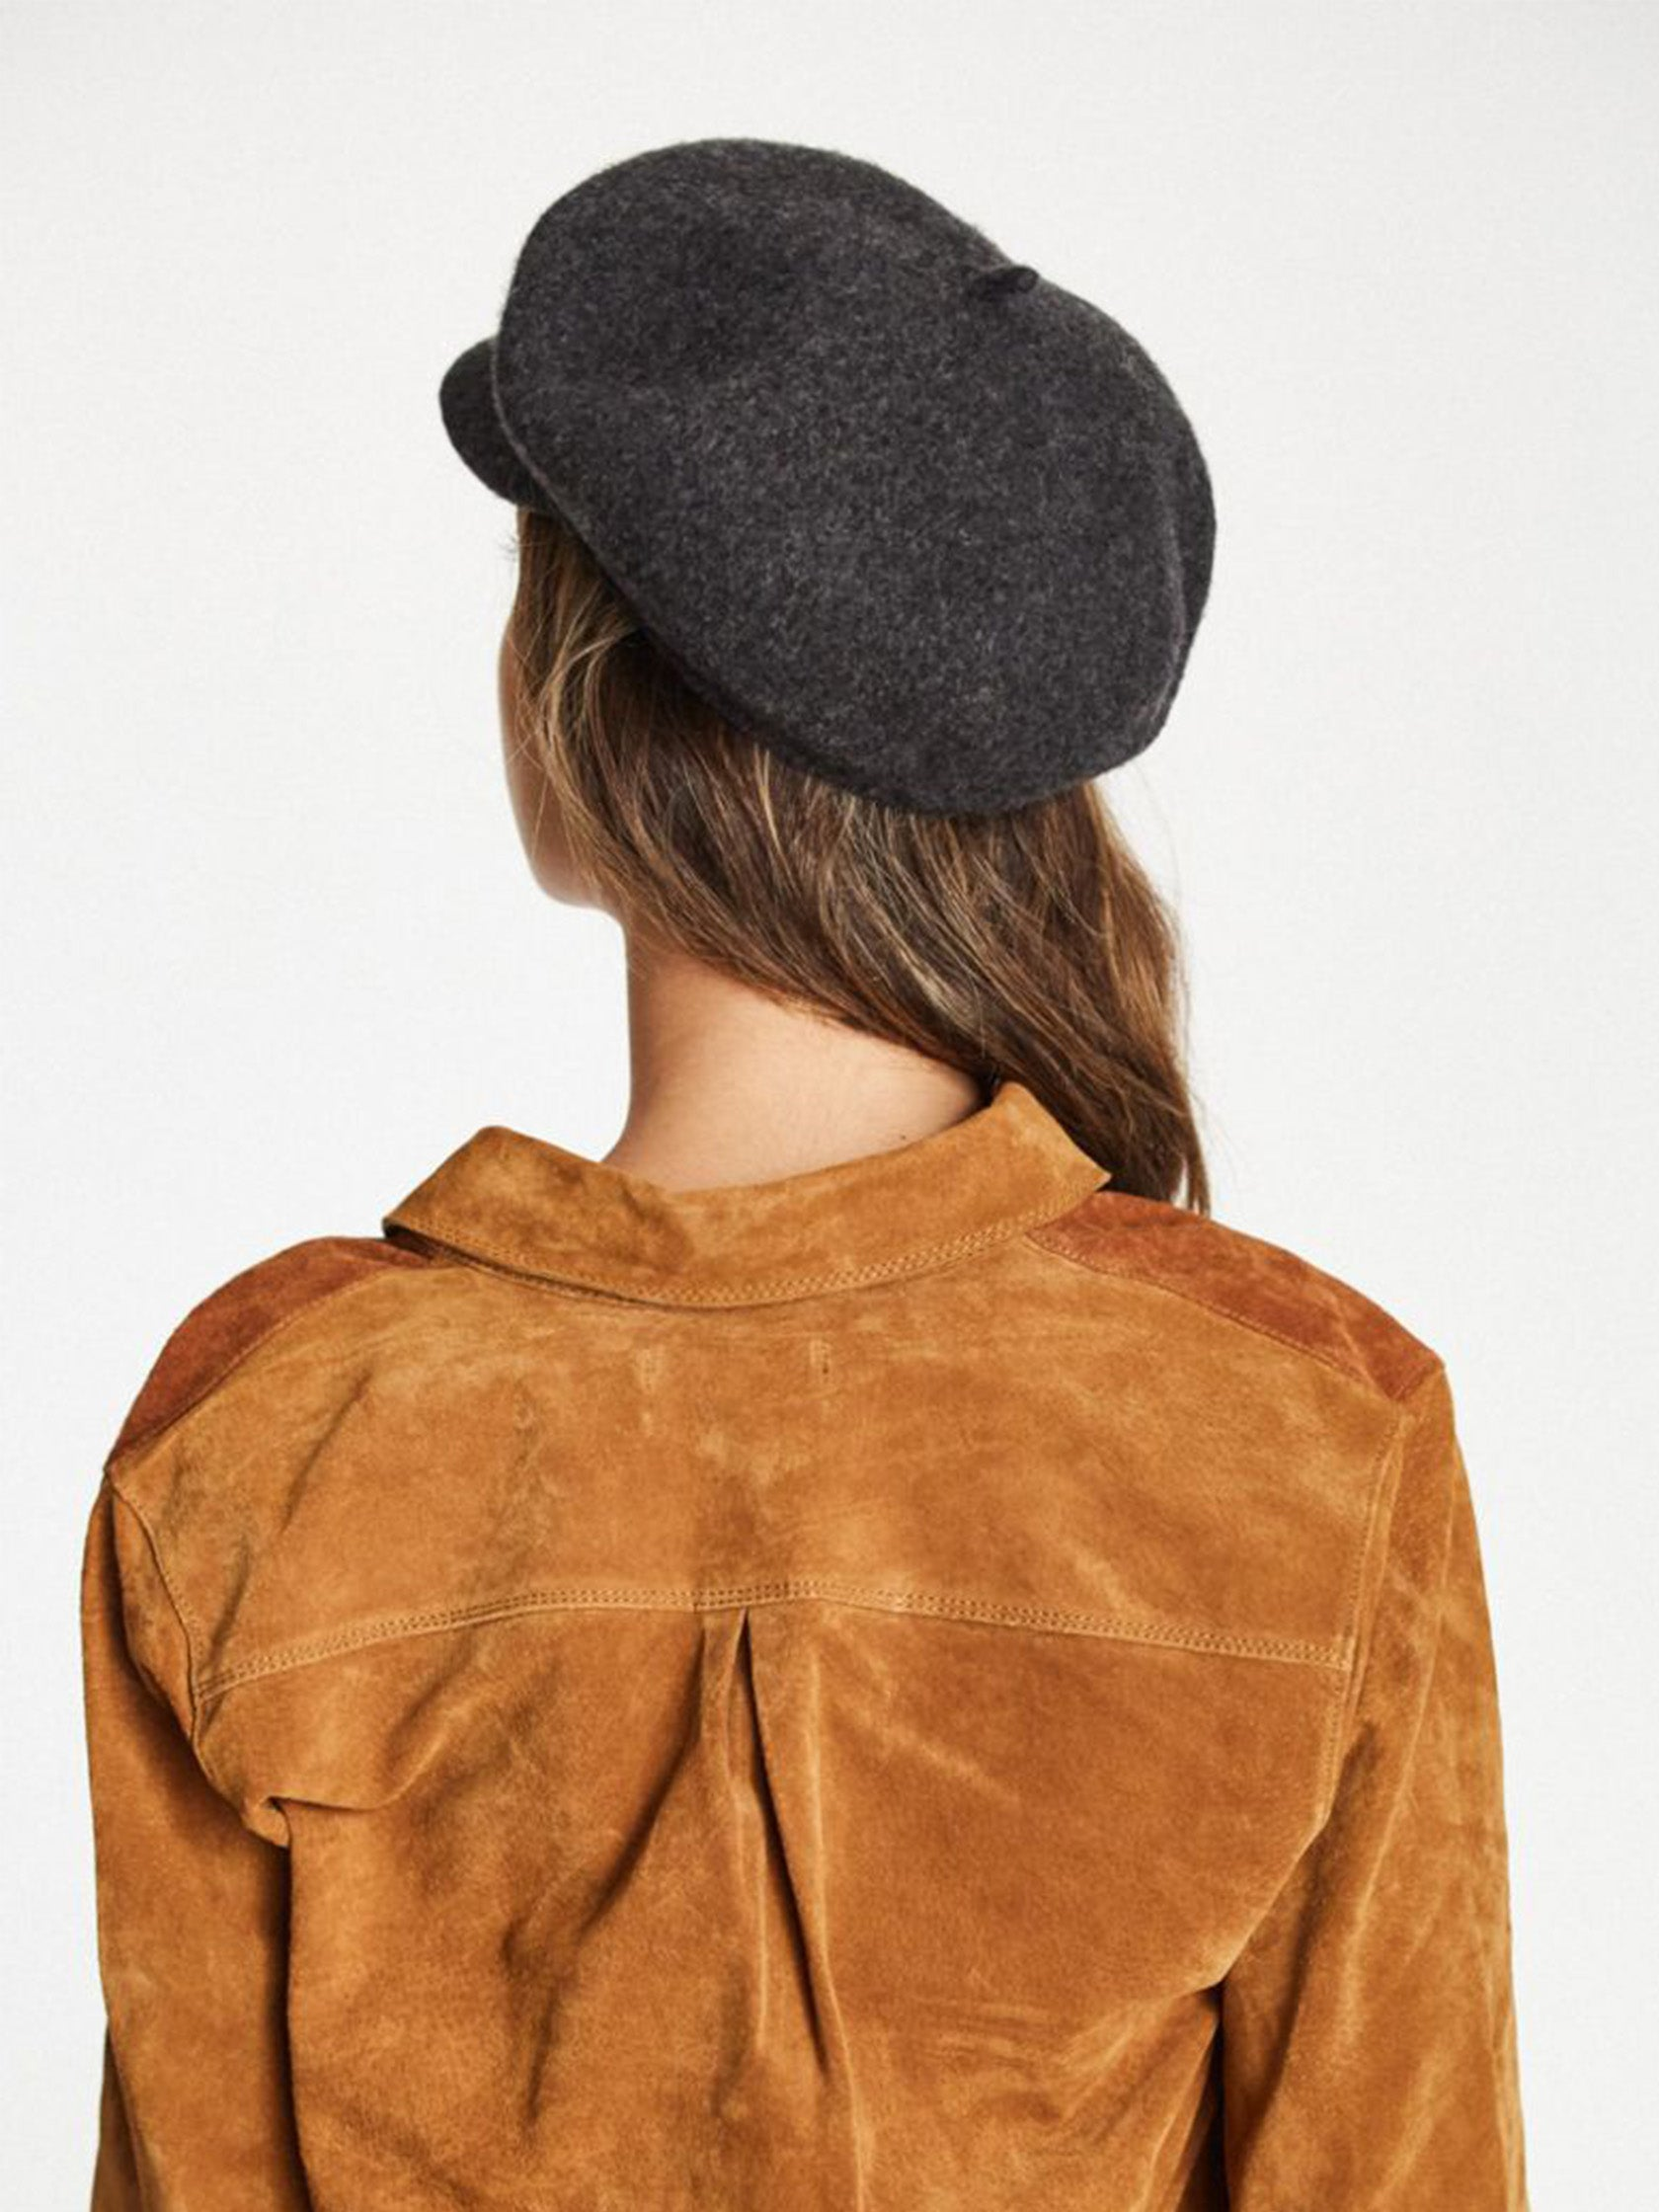 2589c54e6f3ab Girl wearing a hat rental from Brixton called Audrey Brim Beret